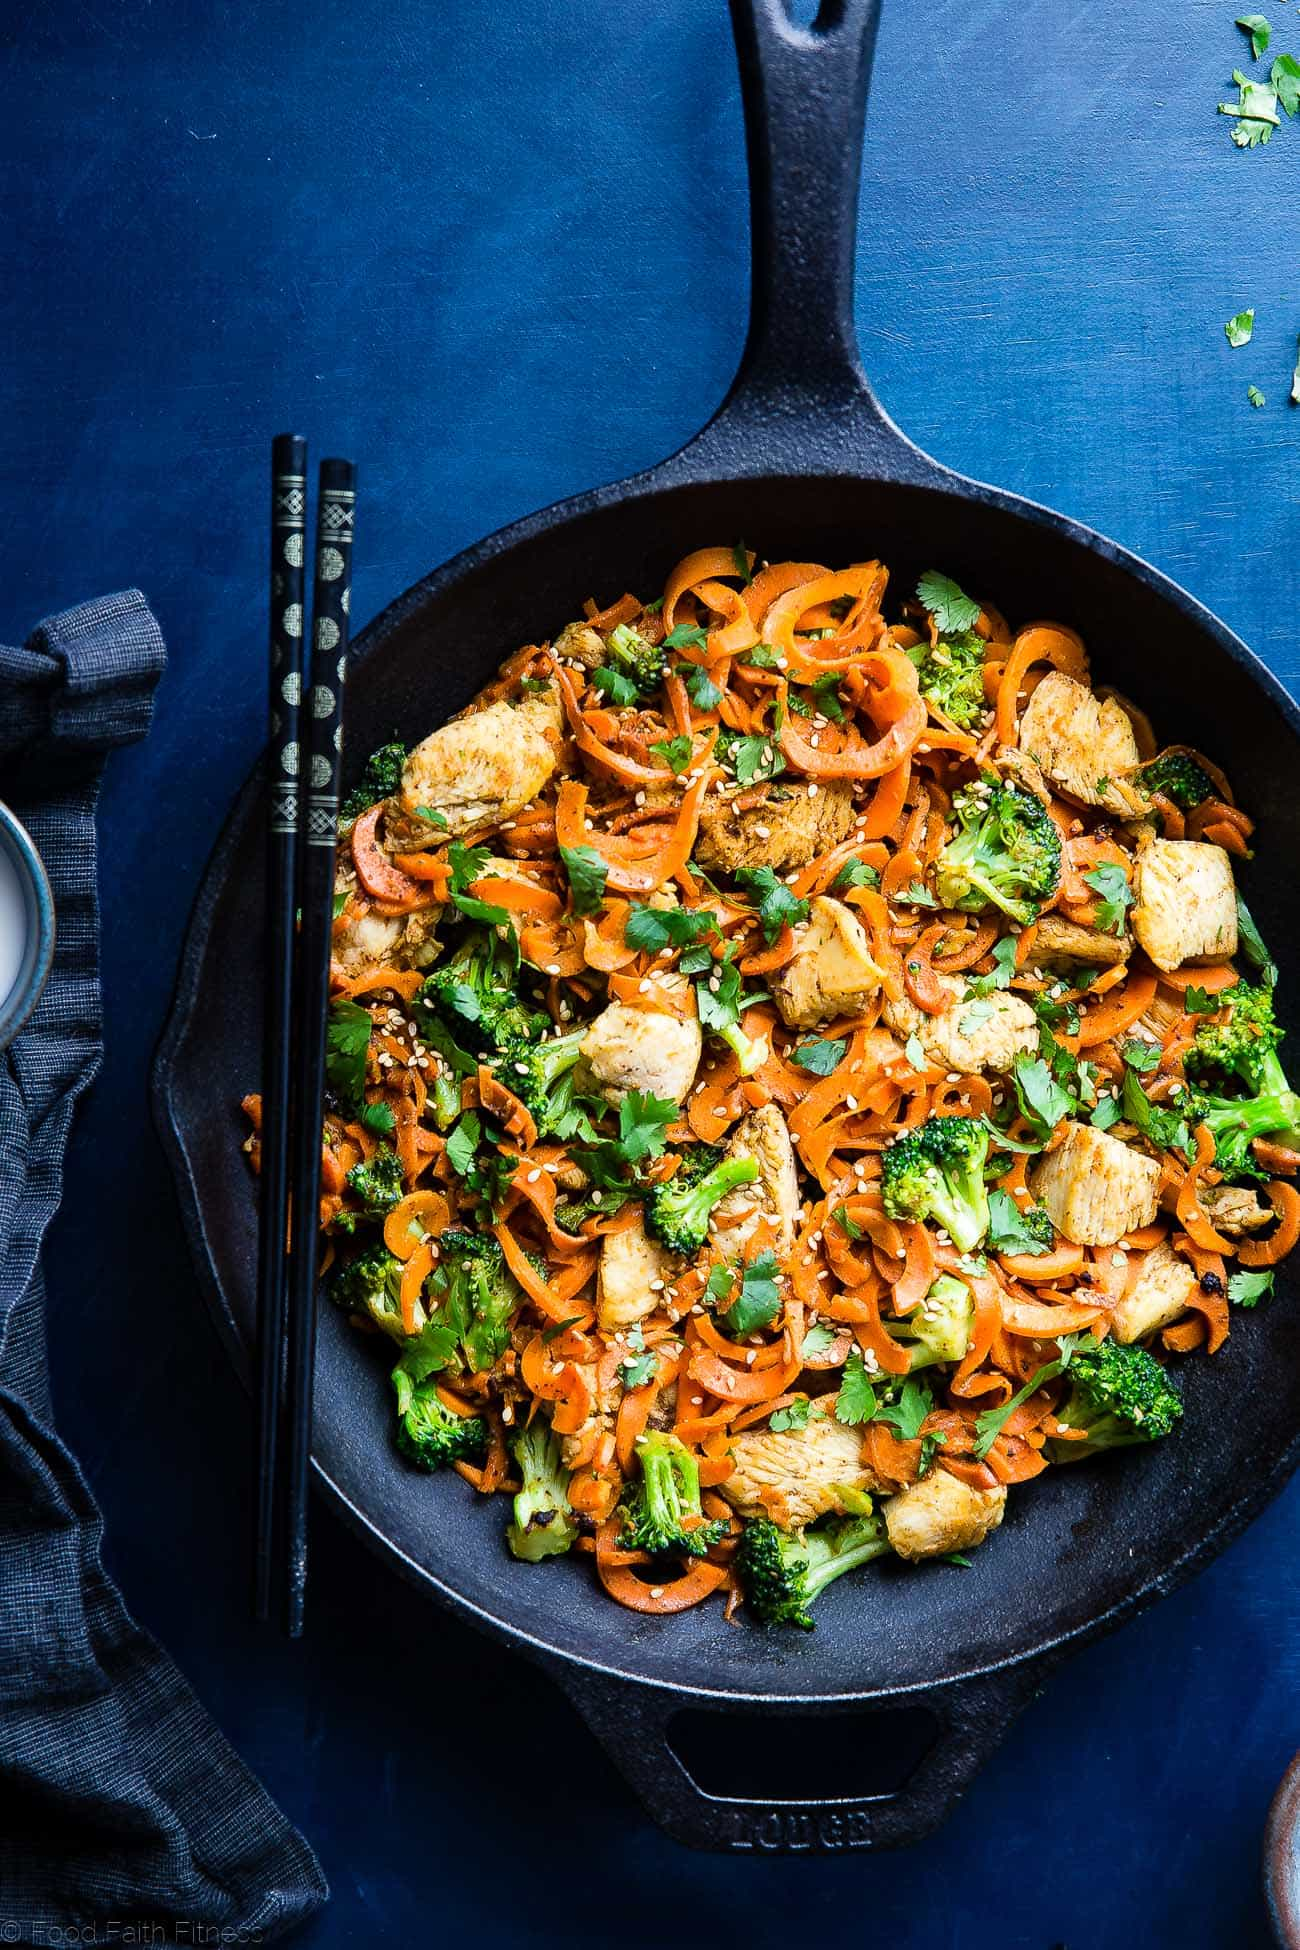 cumin chicken stir fry with carrot noodles